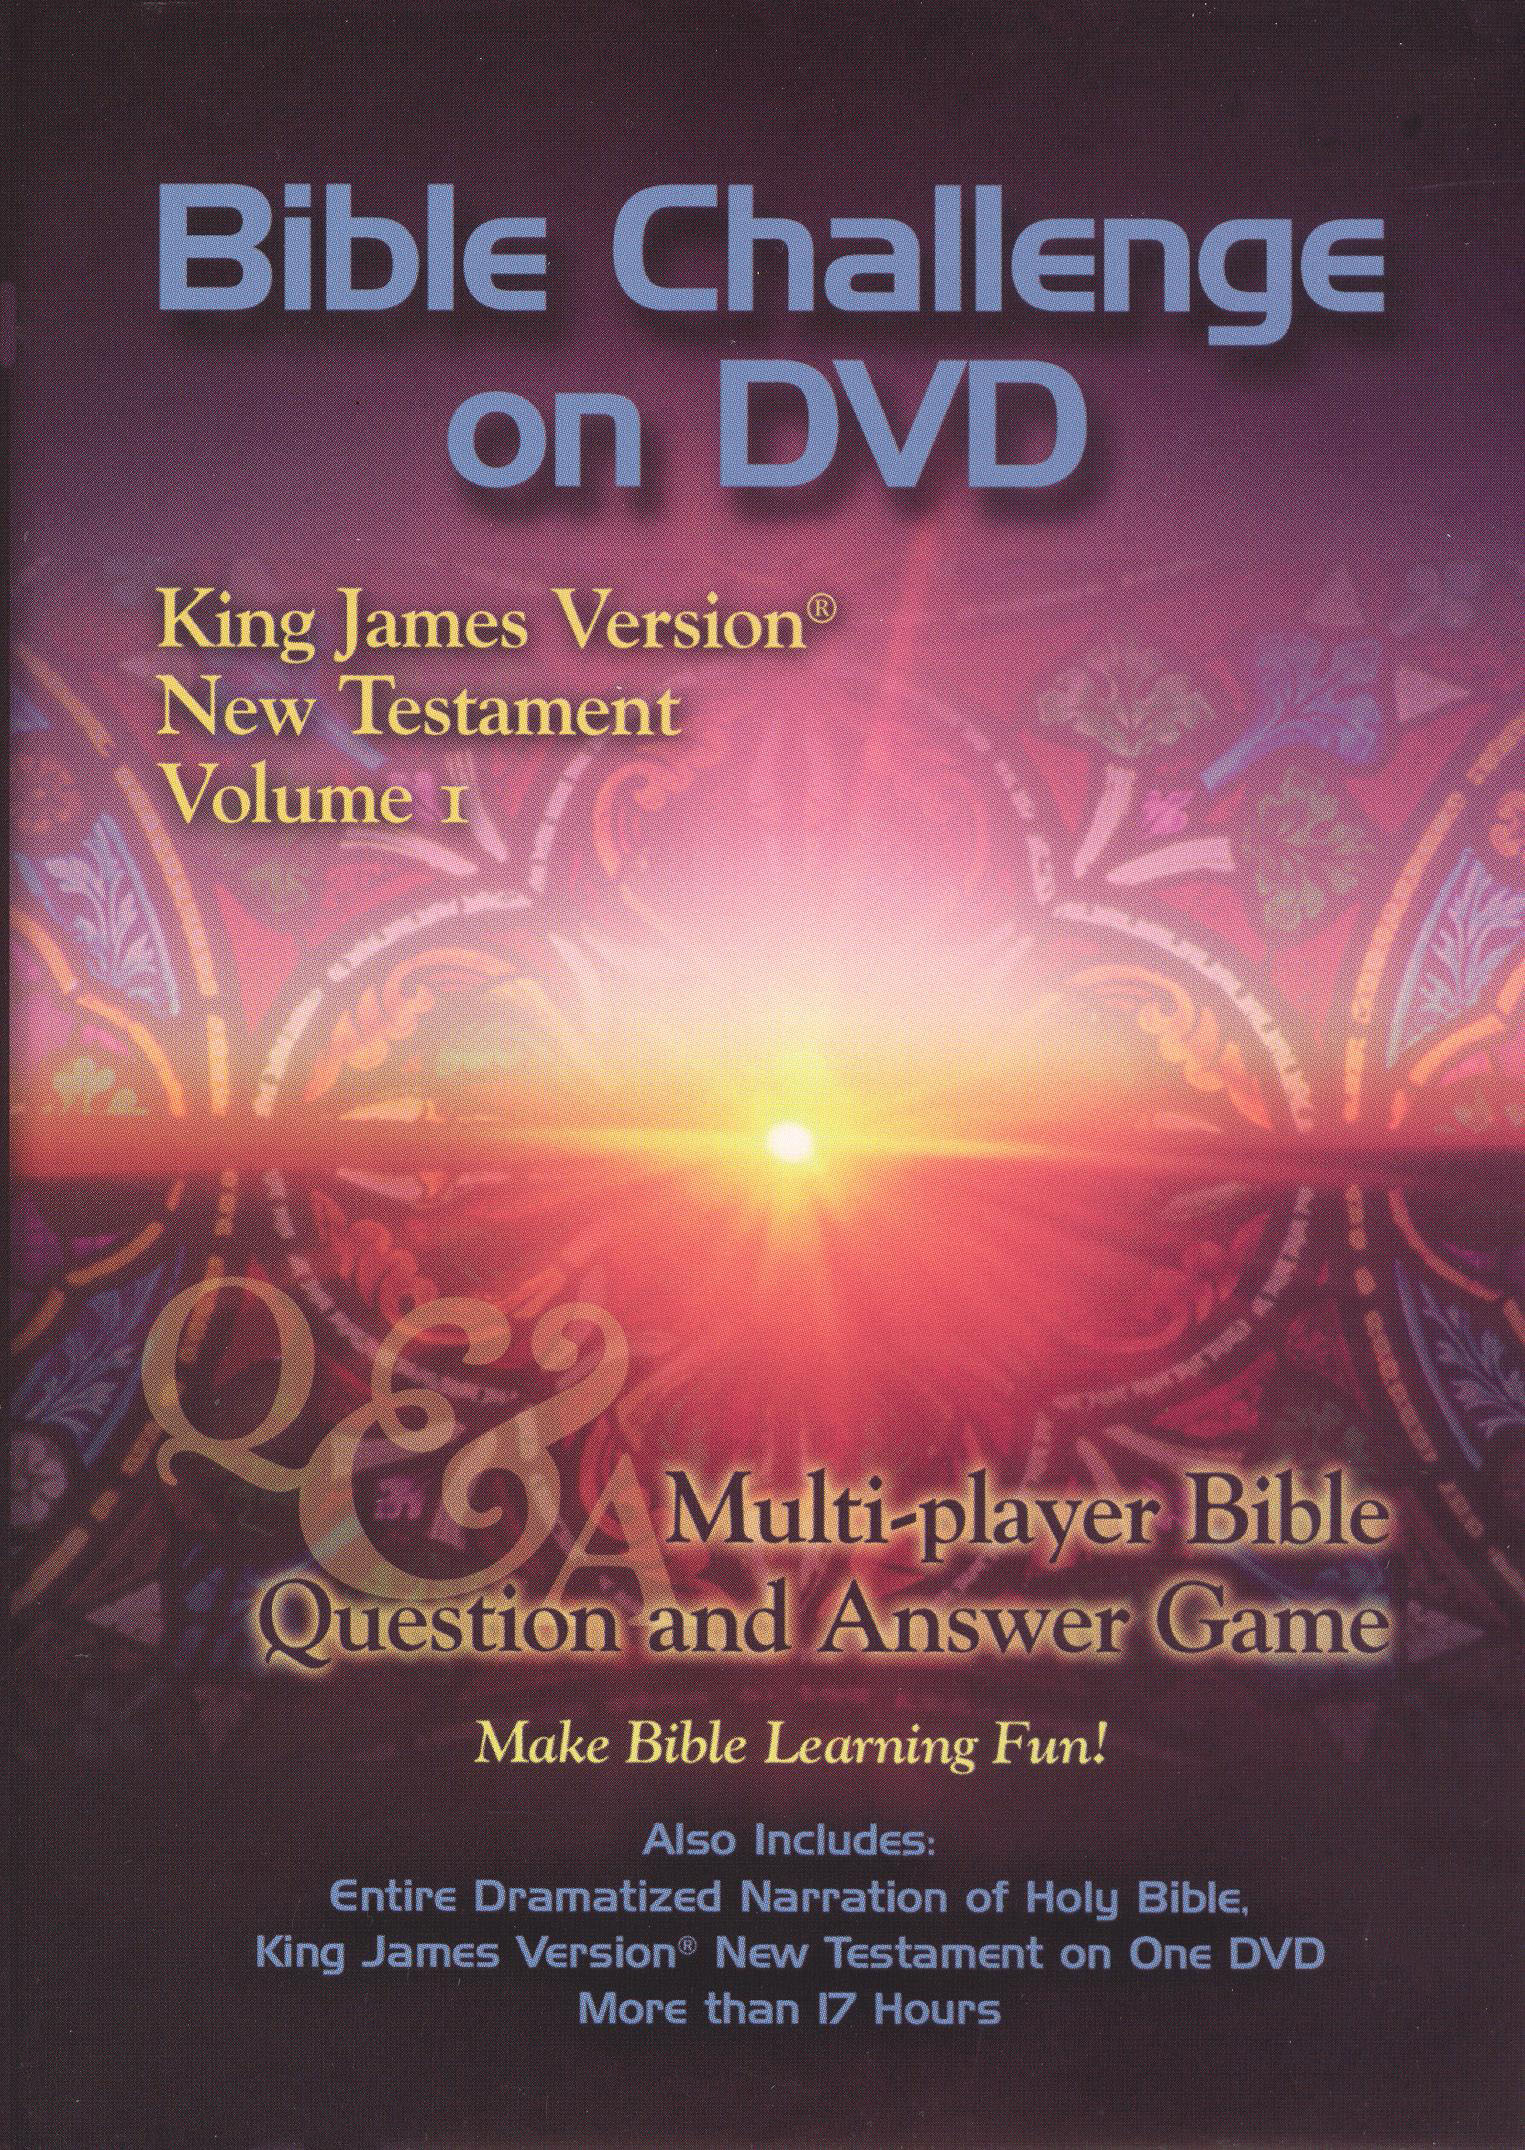 Bible Challenge on DVD: King James Version - New Testament, Vol. 1